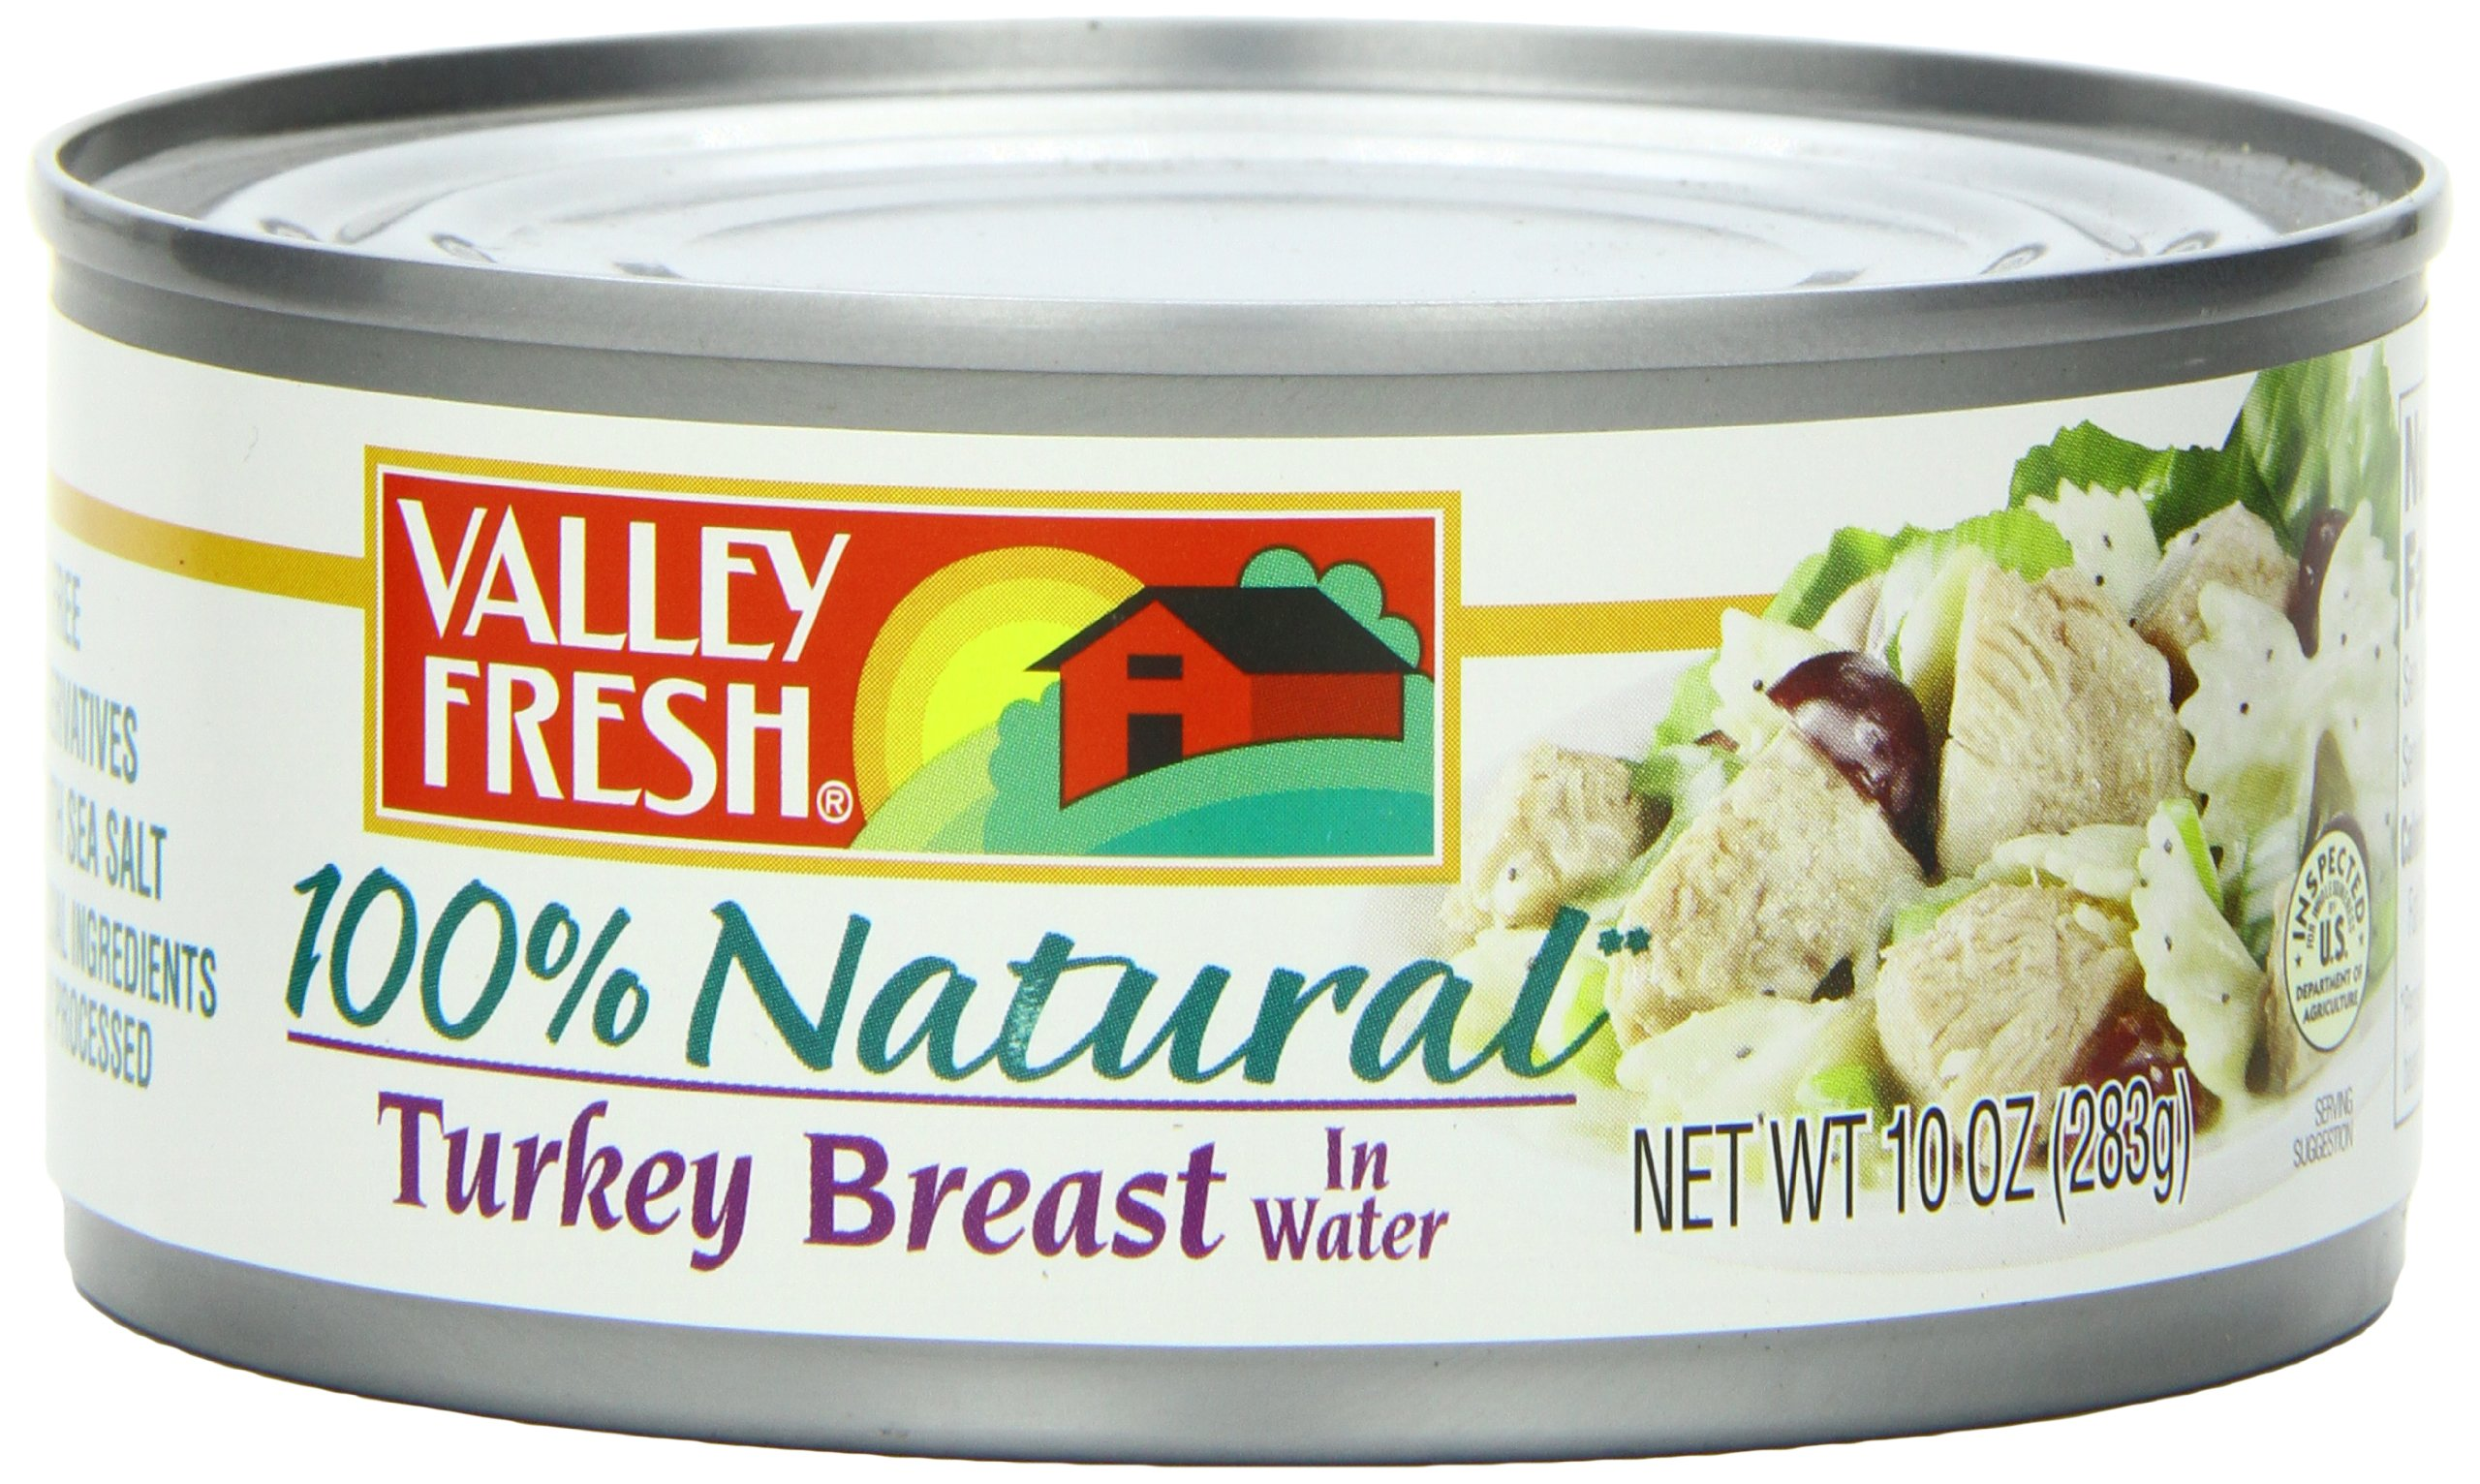 Valley Fresh 100% Natural White Turkey Breast in Water, 10-Ounce Cans (Pack of 12)